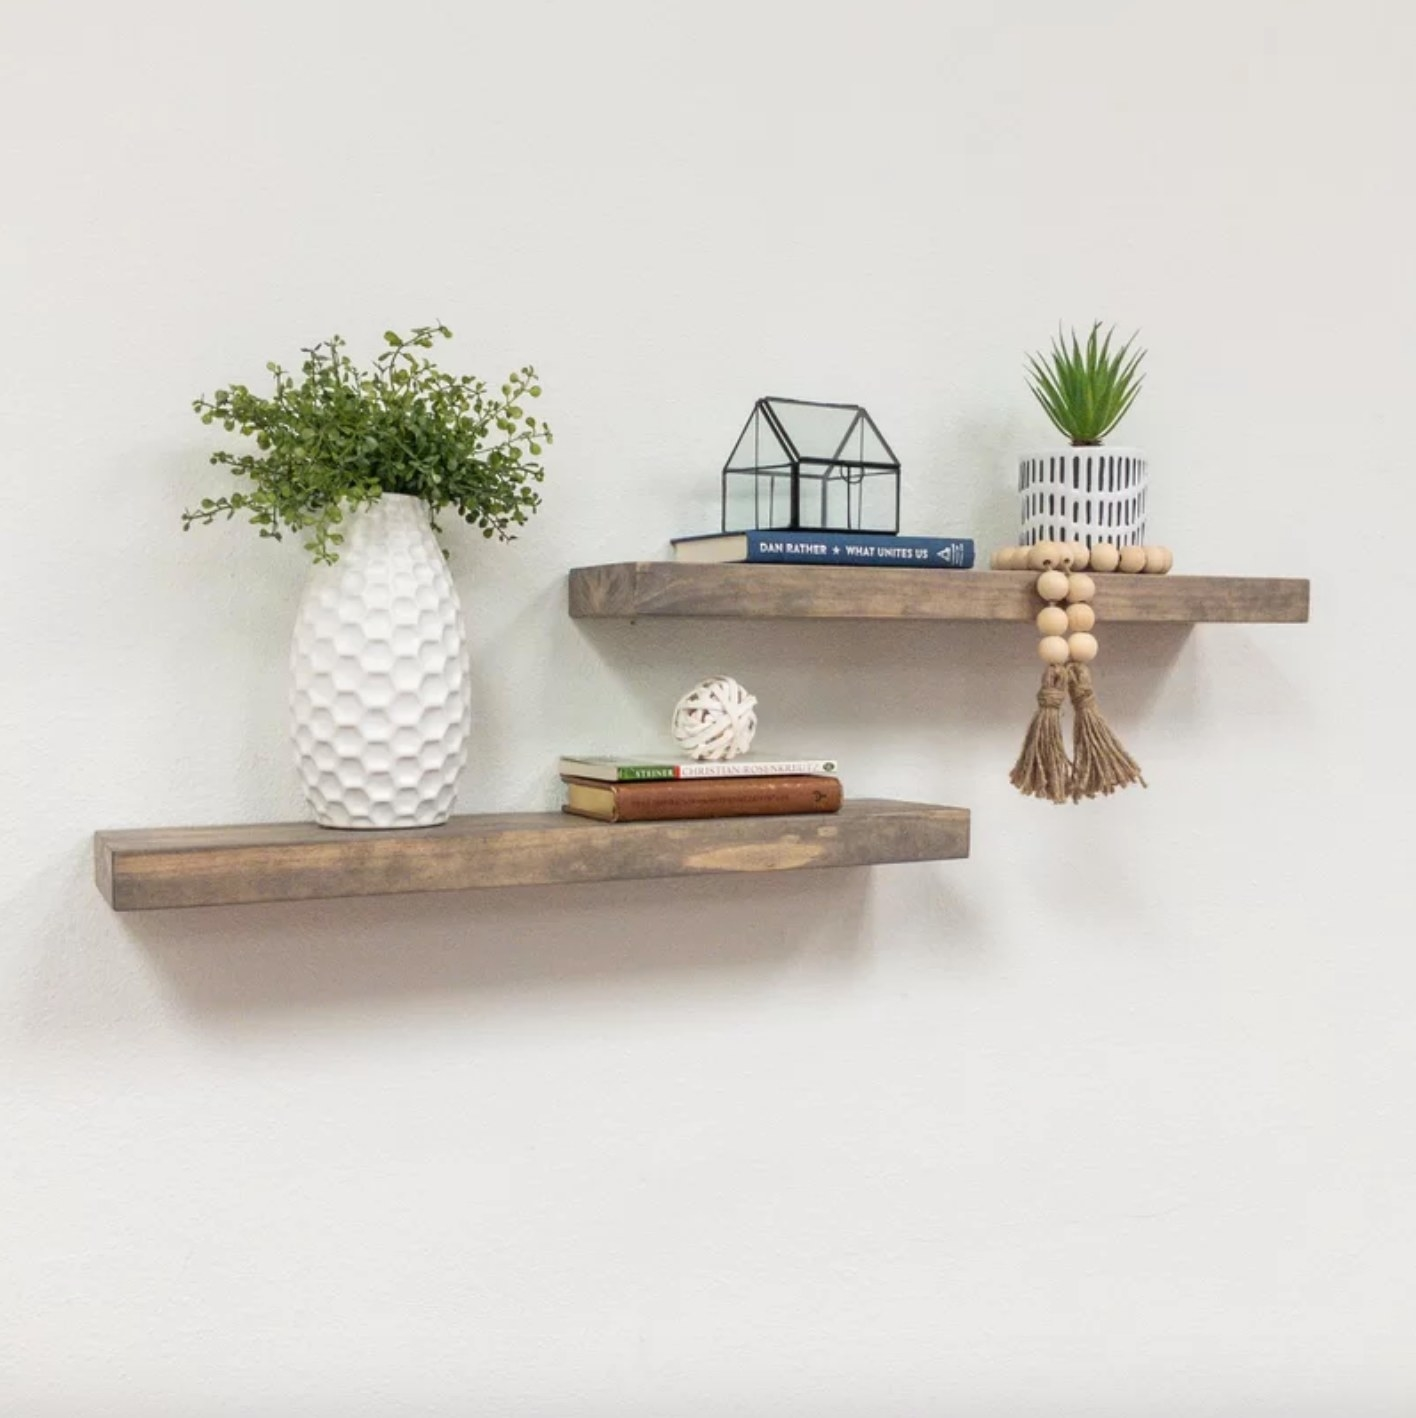 The set of floating shelves in gray